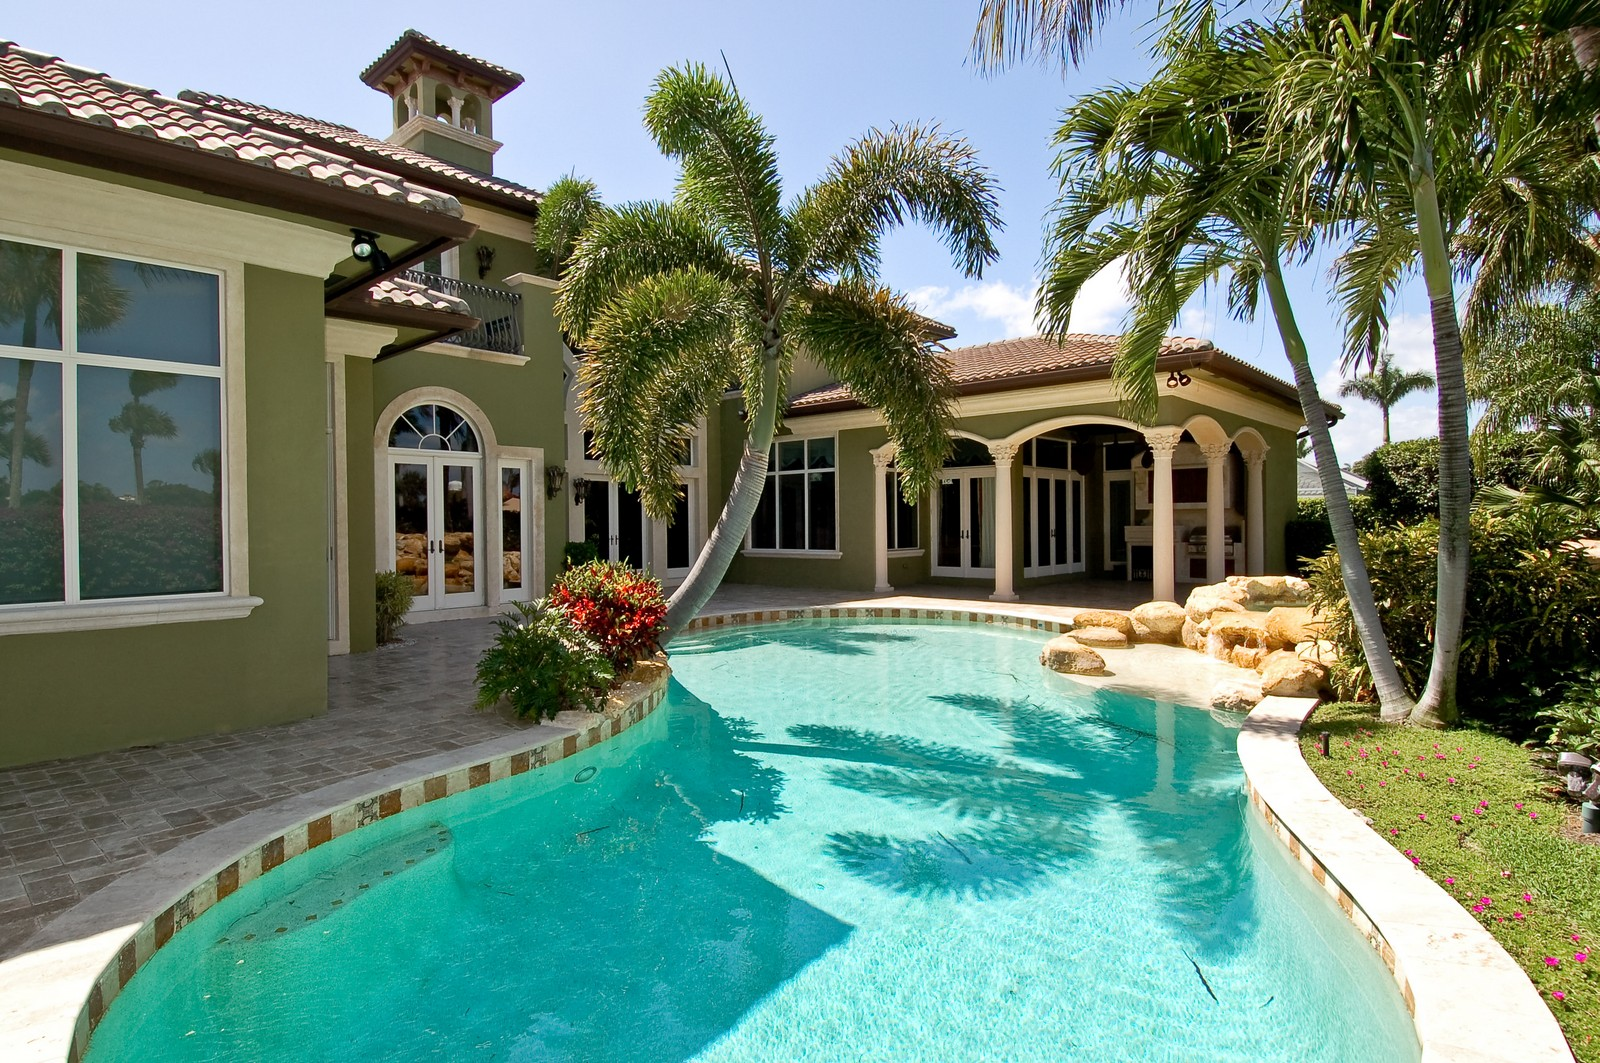 Real Estate Photography - 215 Royal Palm Way, Boca Raton, FL, 33432 - Pool